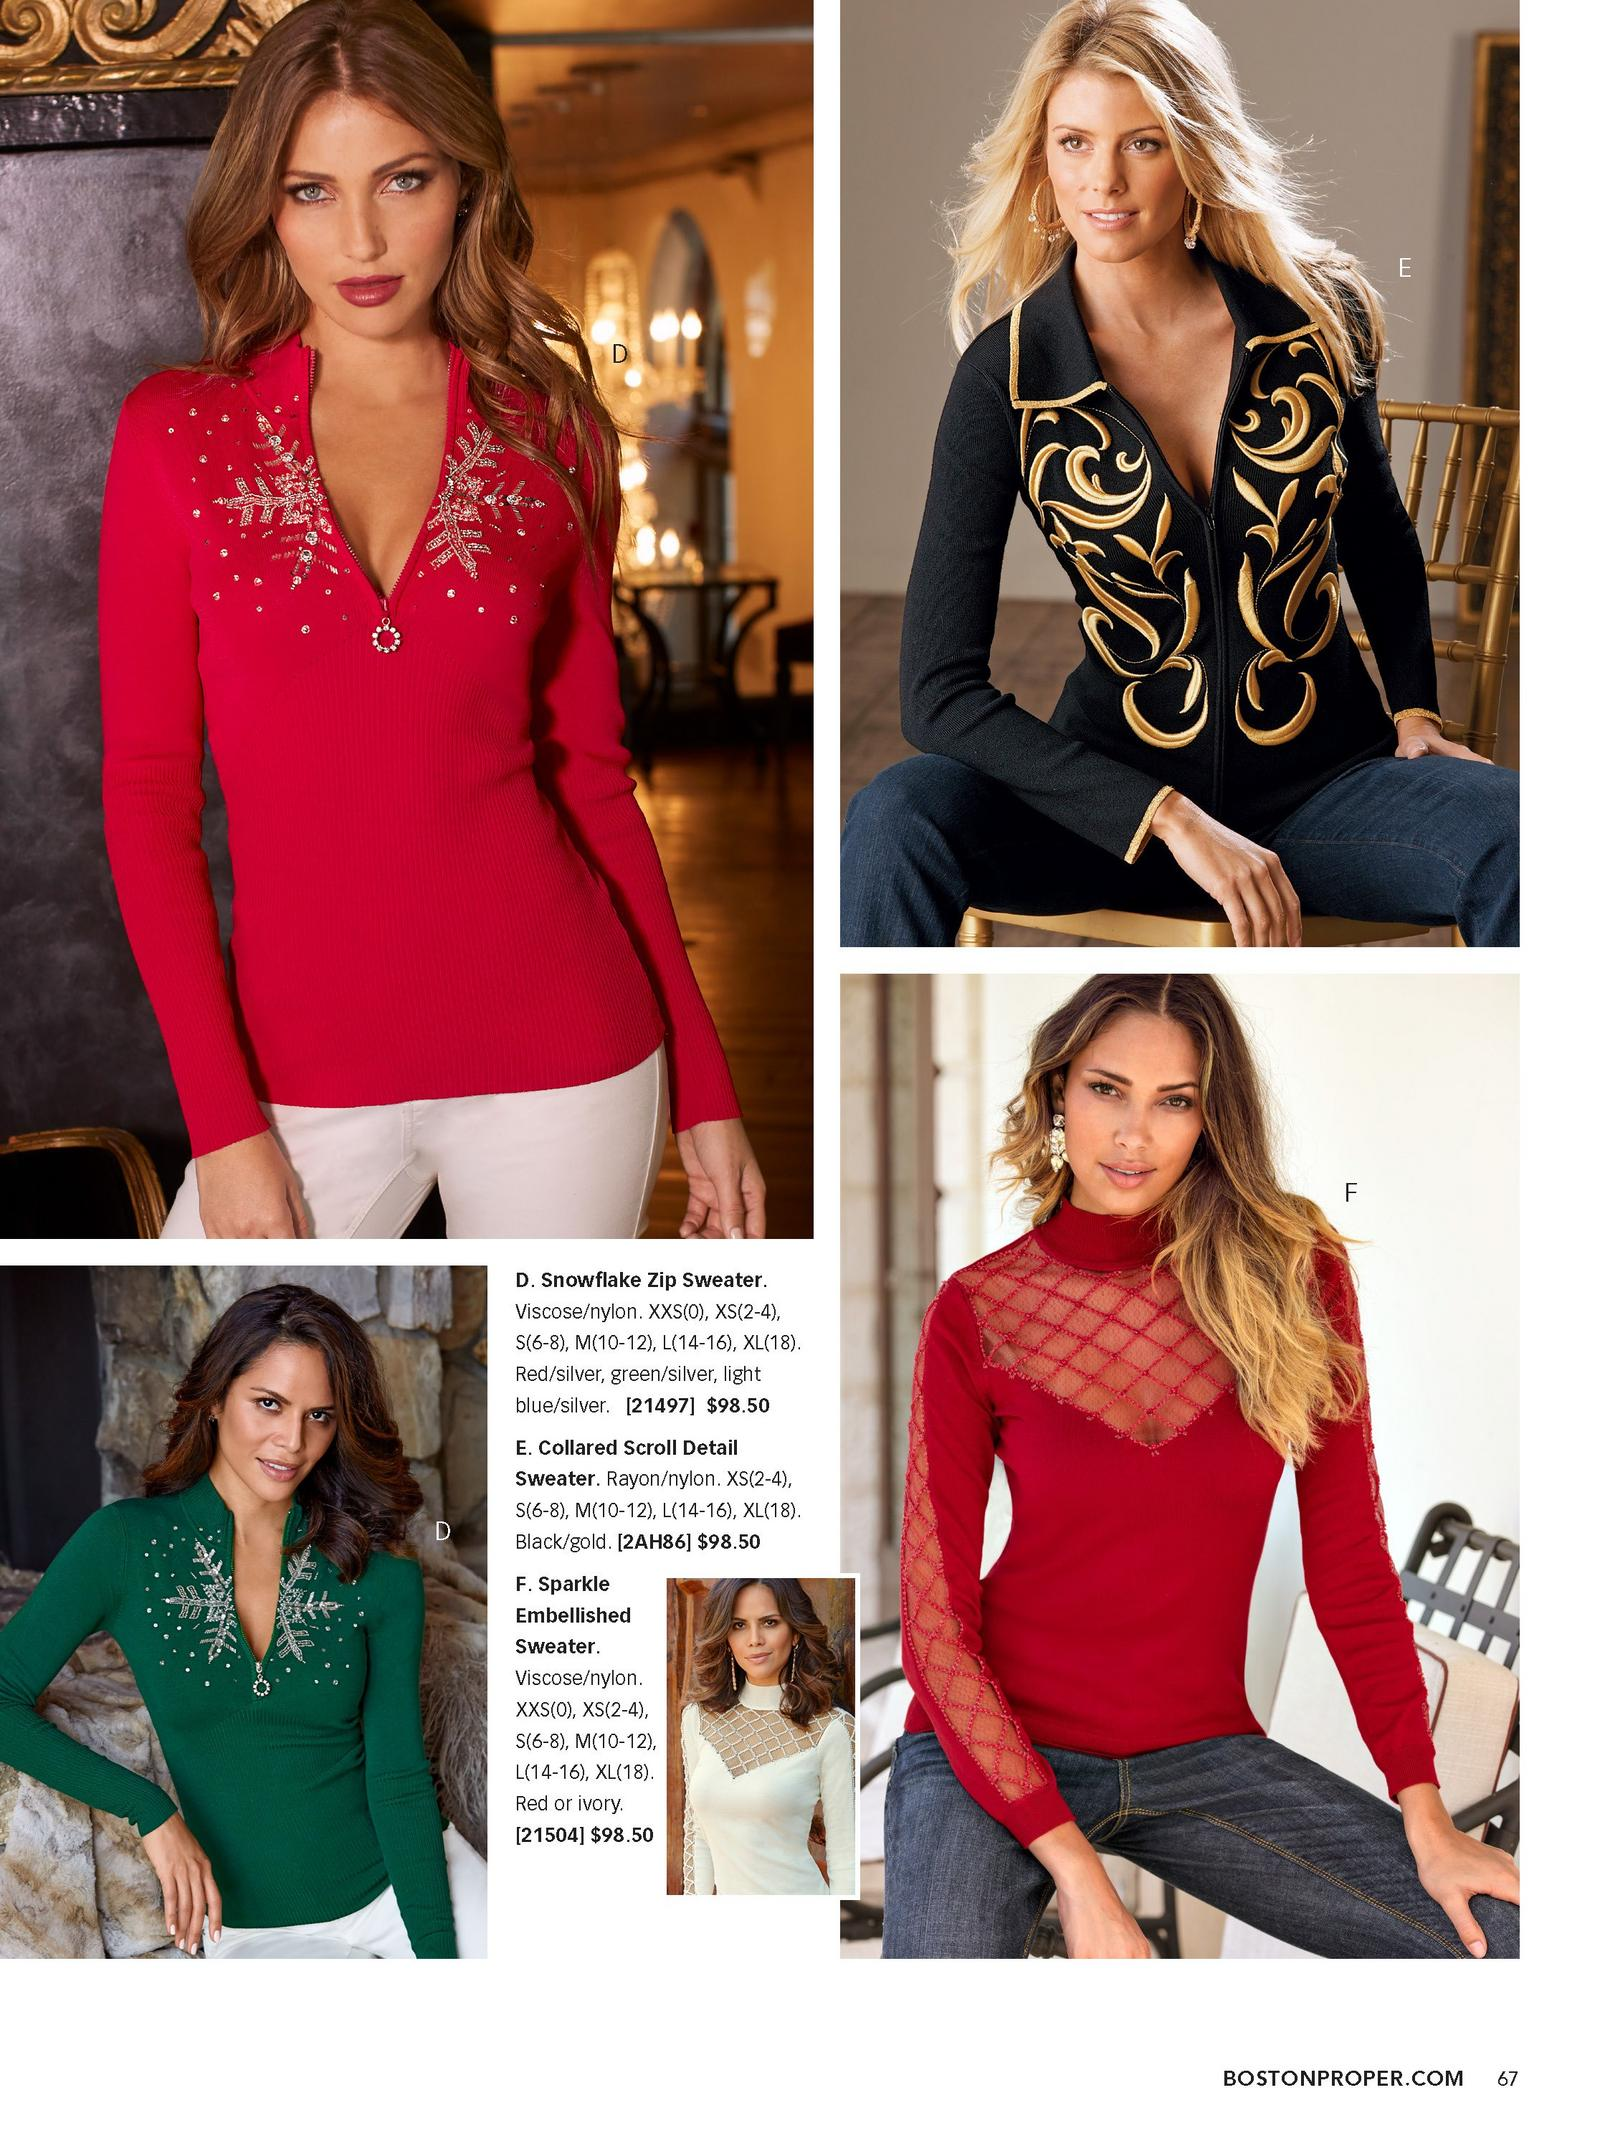 top and bottom left: model wearing quarter zip sweater with jeweled snowflake design in red and green. top right: model wearing zip up black and gold sweater with scroll design. bottom right: model wearing red long sleeve illusion top.